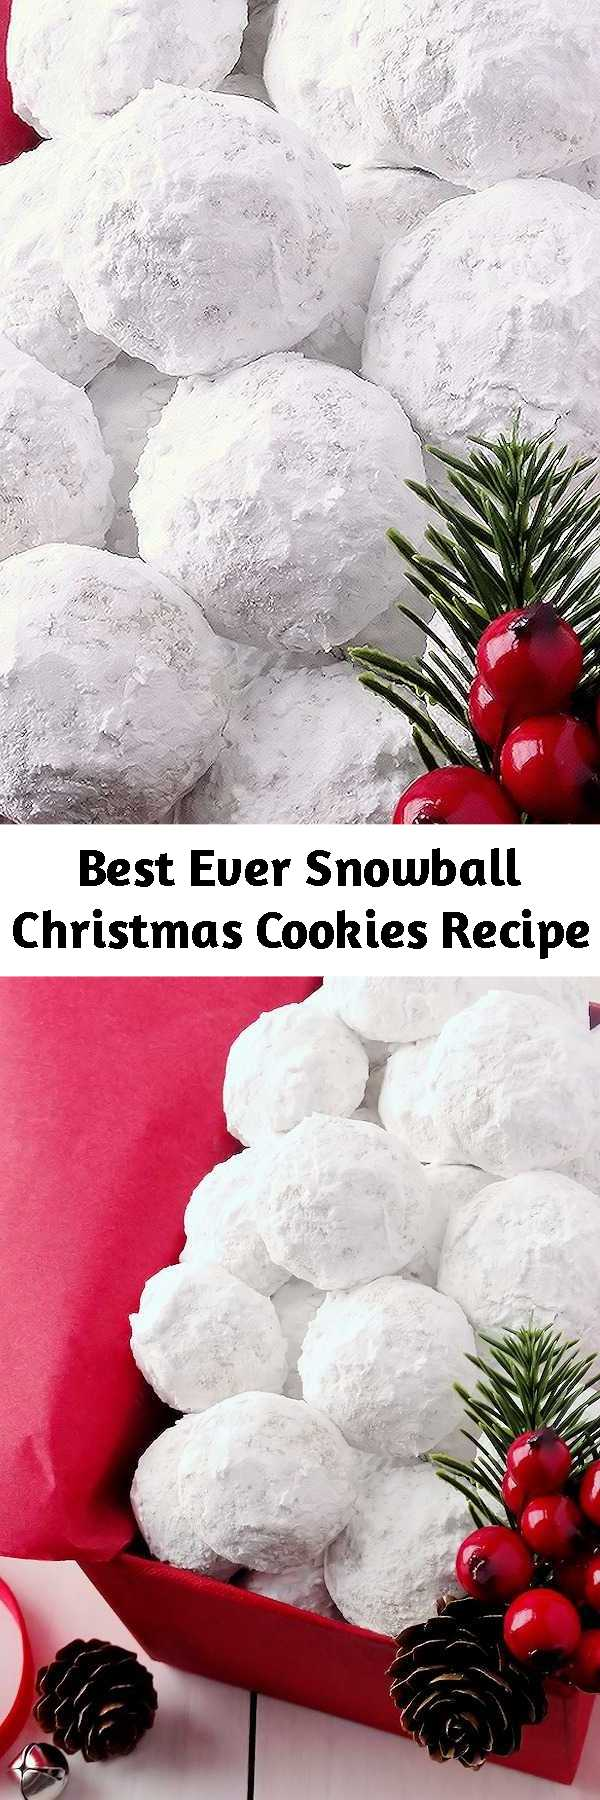 Best Ever Snowball Christmas Cookies Recipe - Simply the best! Buttery, never dry, with plenty of walnuts for a scrumptious melt-in-your-mouth shortbread cookie (also known as Russian Teacakes or Mexican Wedding Cookies). Everyone will LOVE these classic Christmas cookies!